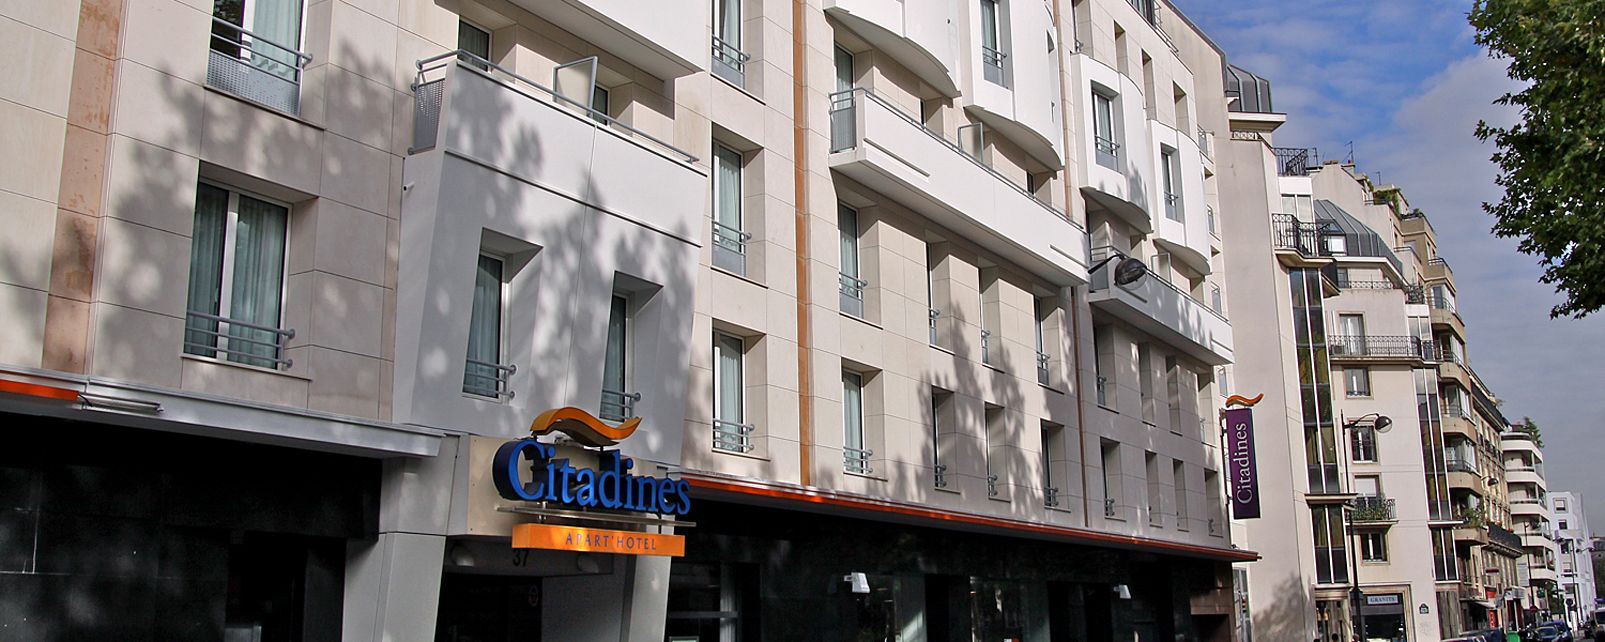 H tel citadines paris bastille marais paris france for Hotel boulevard richard lenoir paris